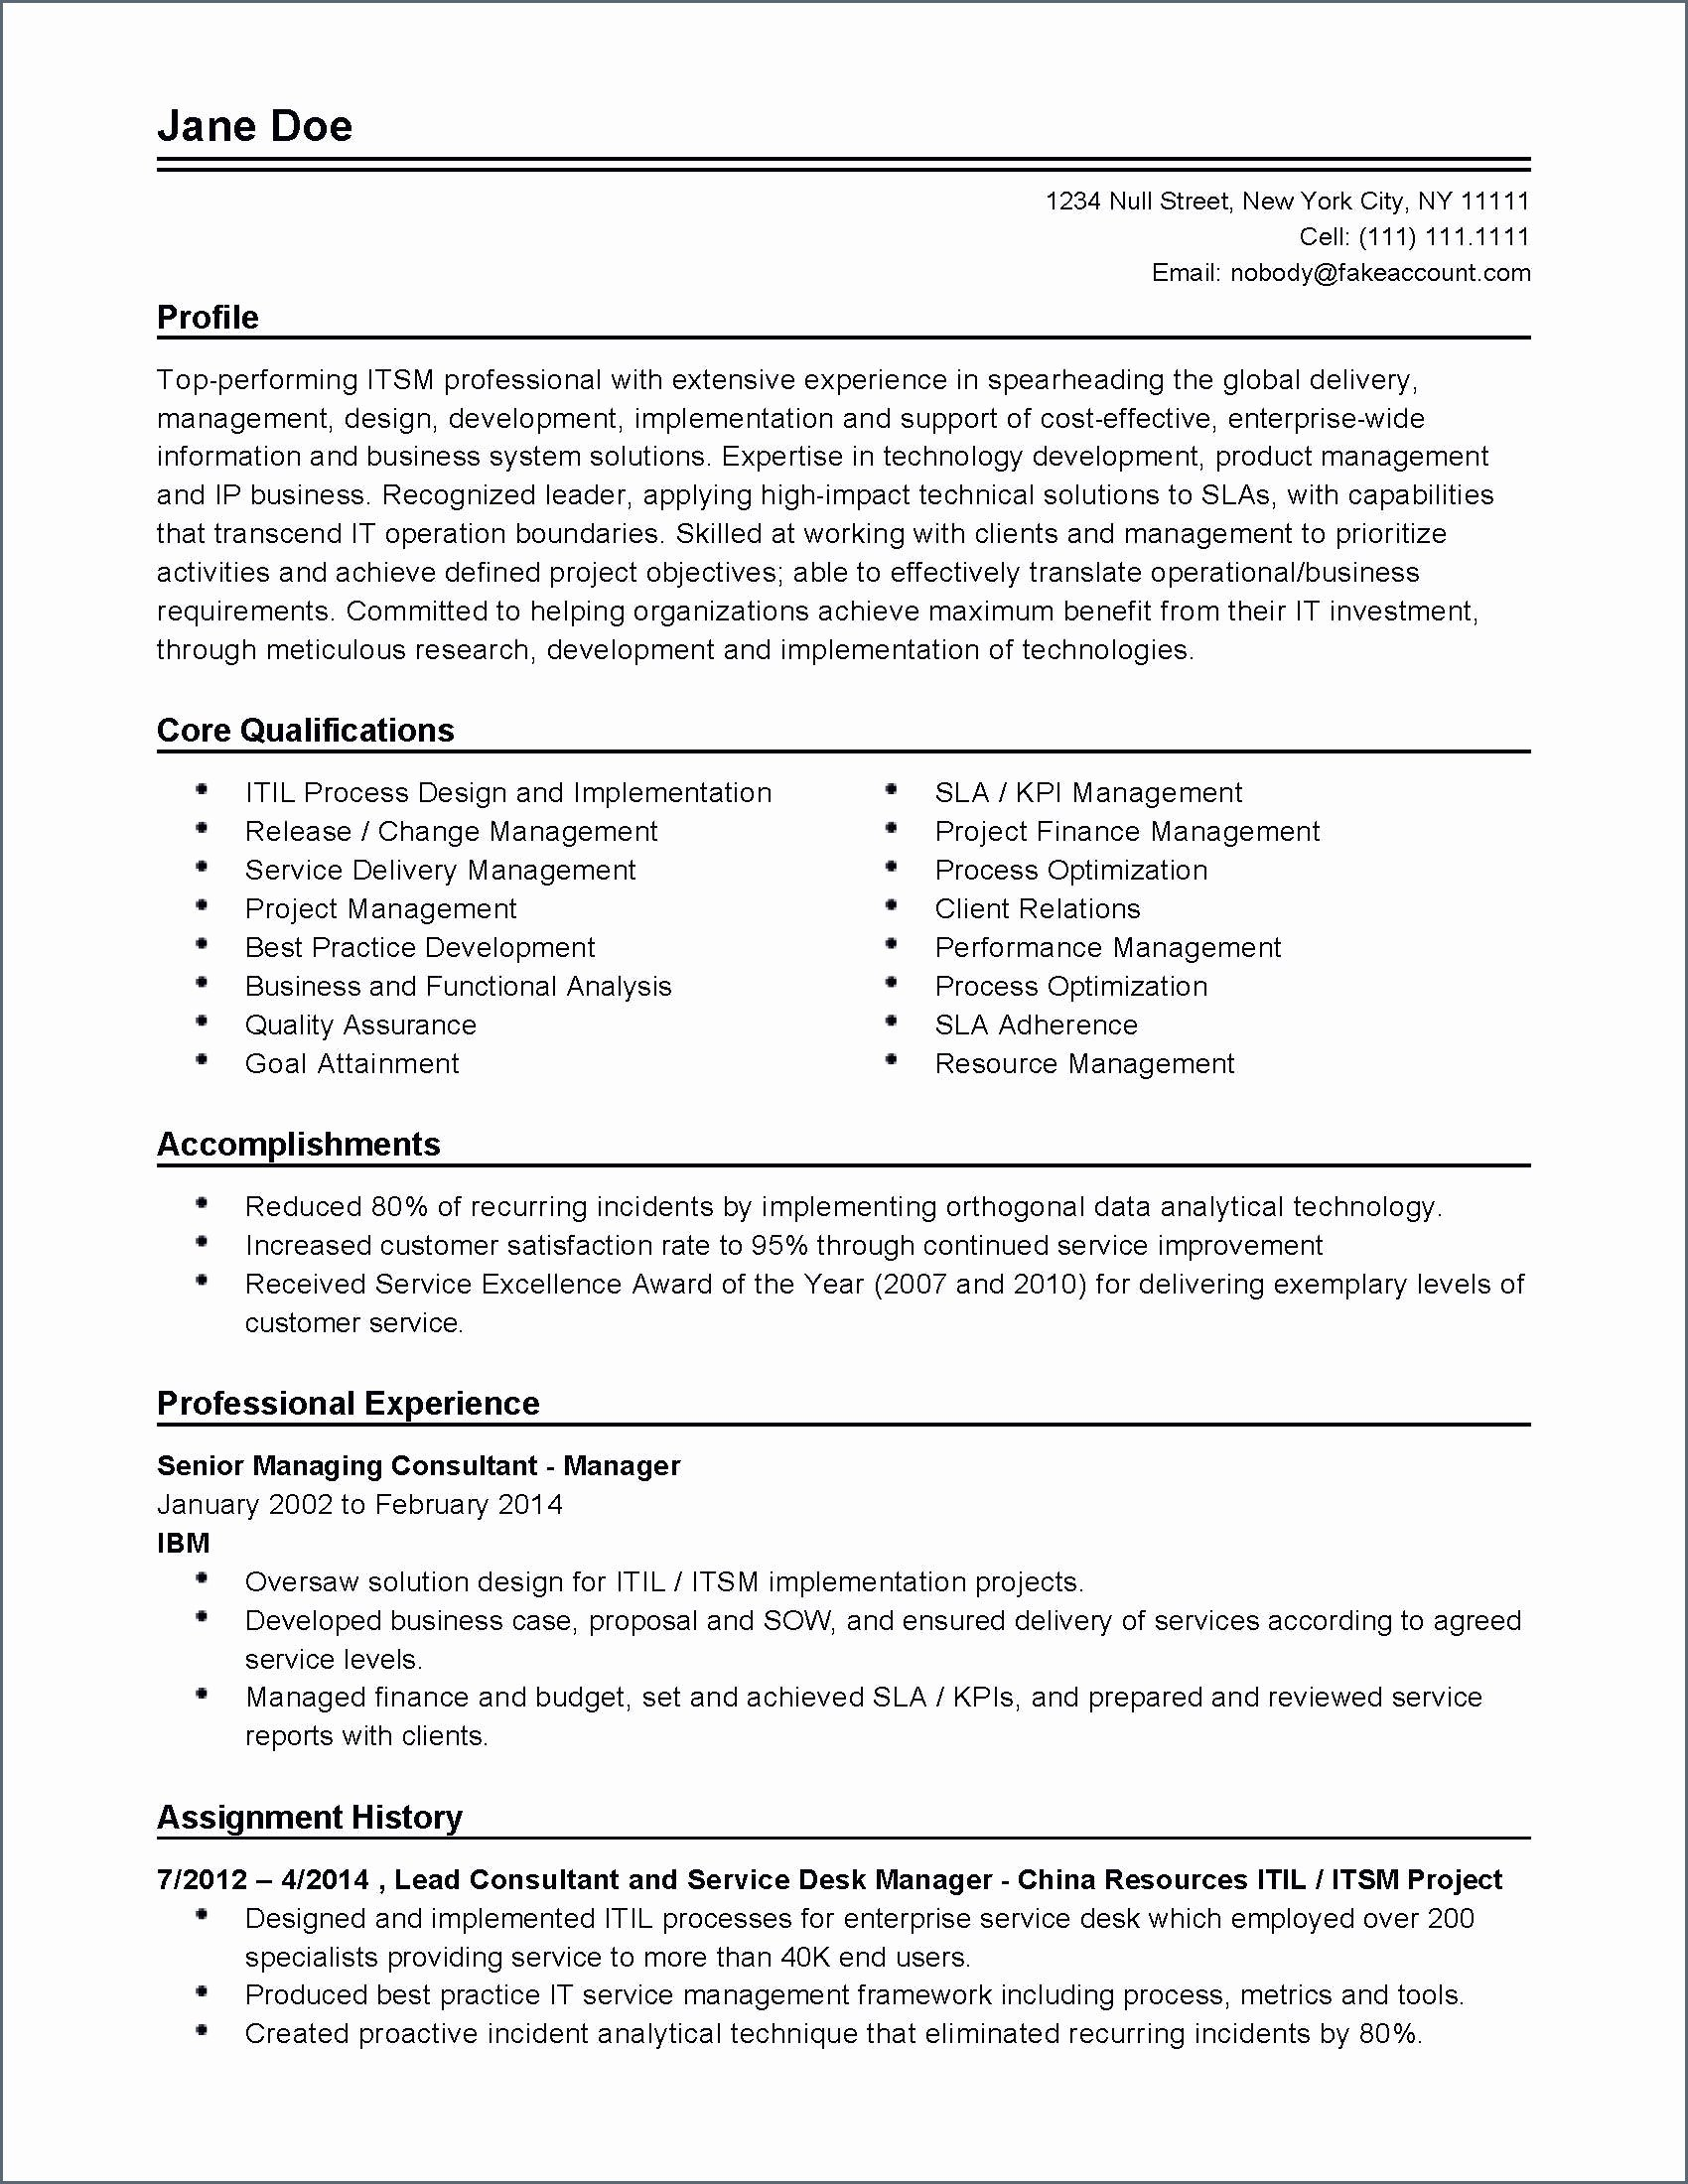 Graduate Nurse Resume Template Elegant New Graduate Nurse Resume Tag 45 Extraordinary New